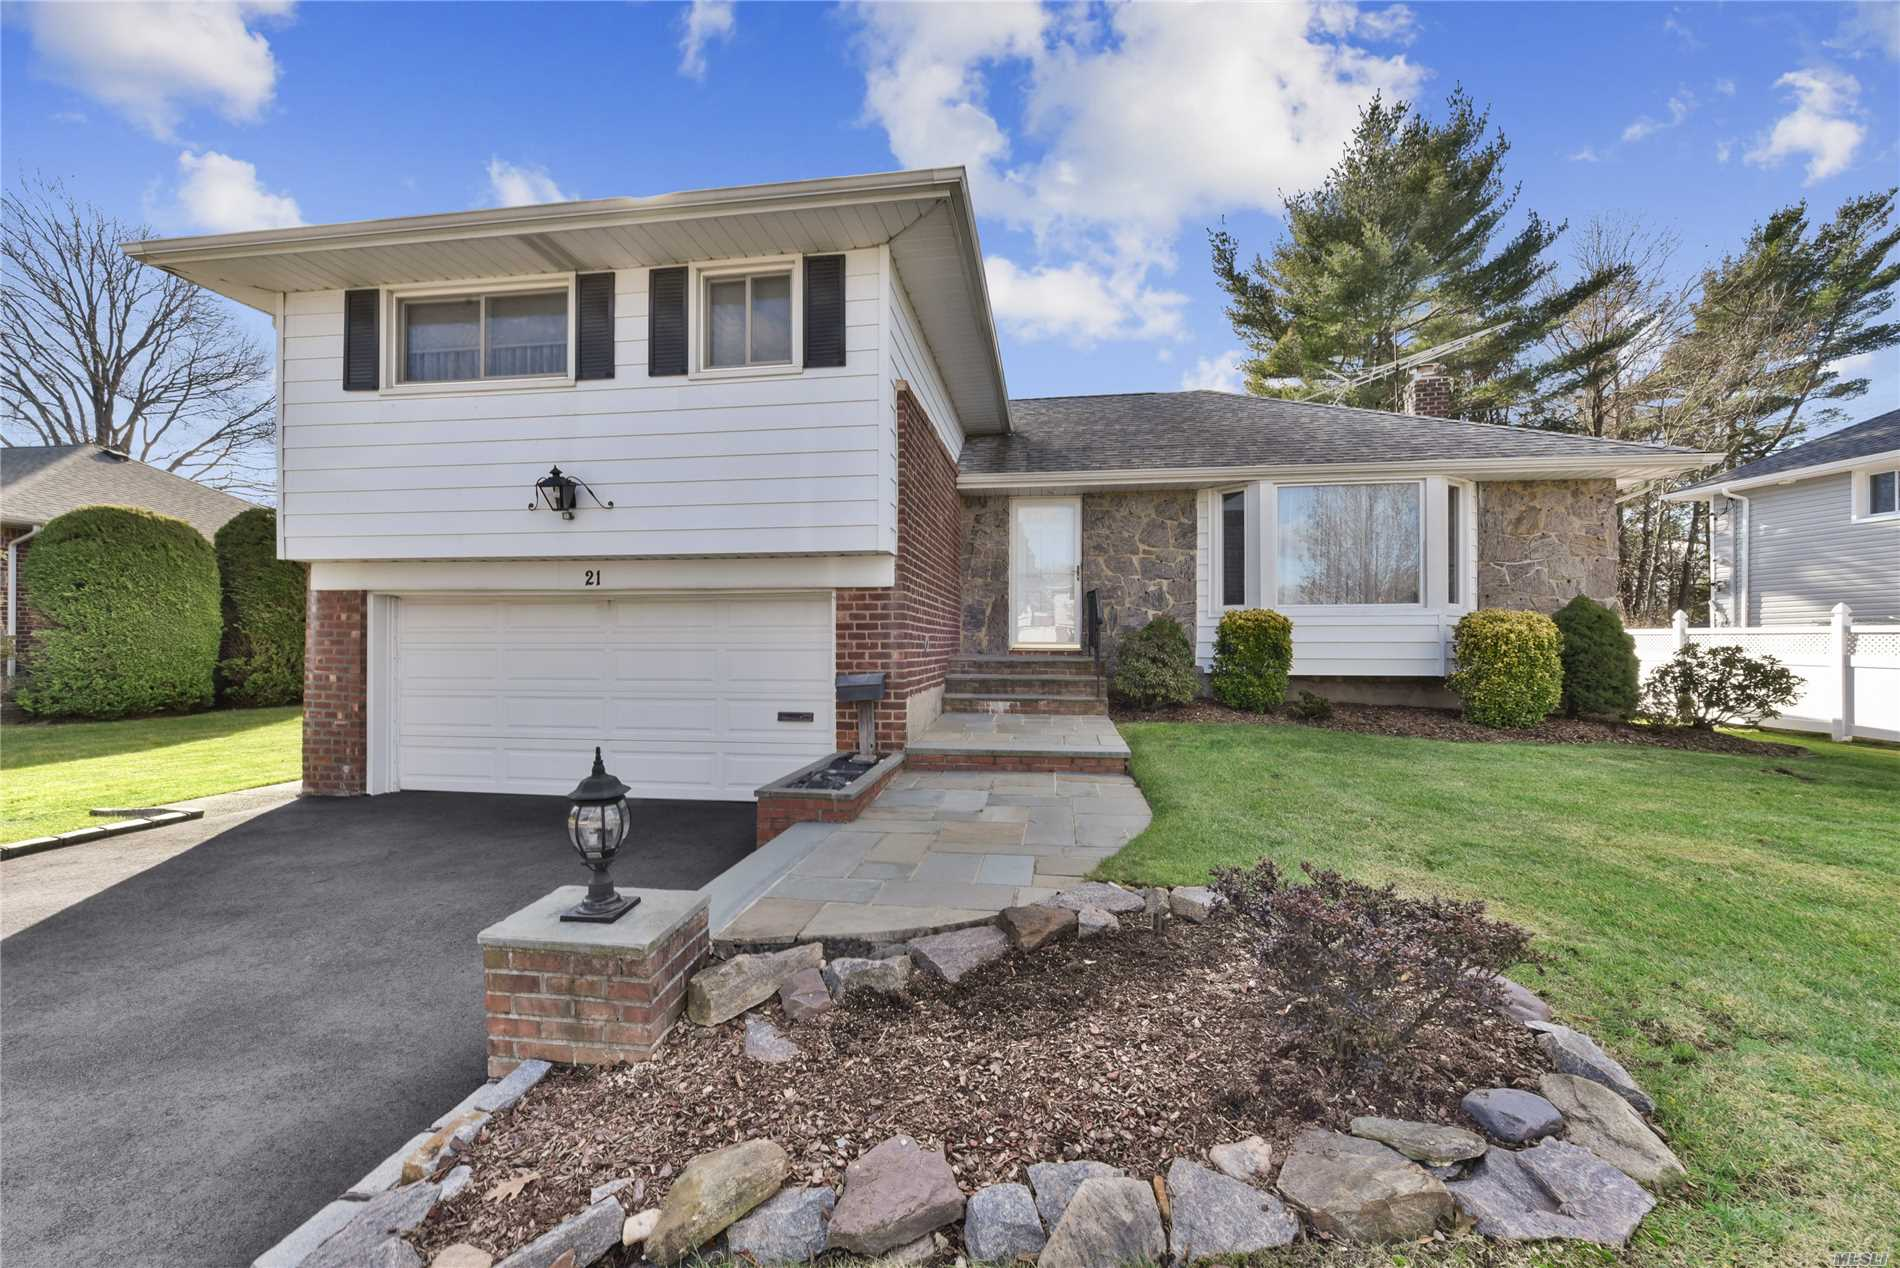 Mint Expanded 4 Bedroom, 3 Bathroom, Split, Meticulously Kept By Proud Owner. Low Taxes, Central Air, Hardwood Floors, Syosset Schools, Close To All Shopping, House Of Worship, Transportation & Railroad. Will Not Last -- Must See!